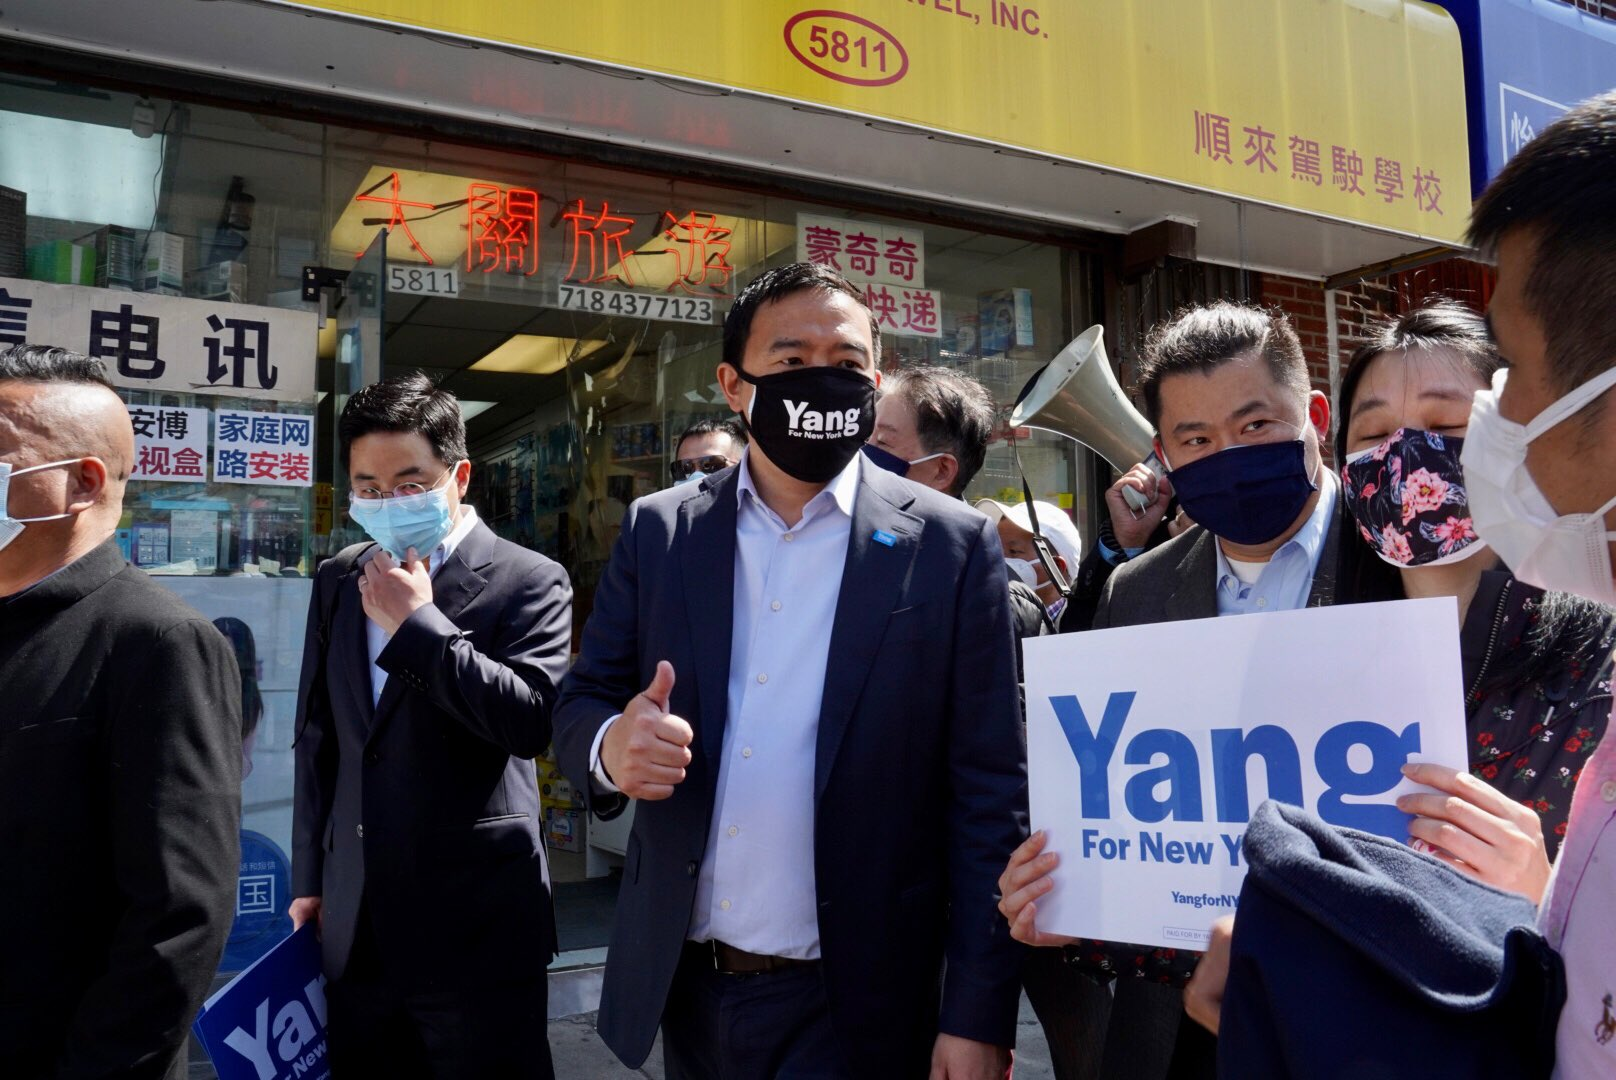 www.gothamgazette.com: What is Andrew Yang's Mayoral Campaign Policy Platform?